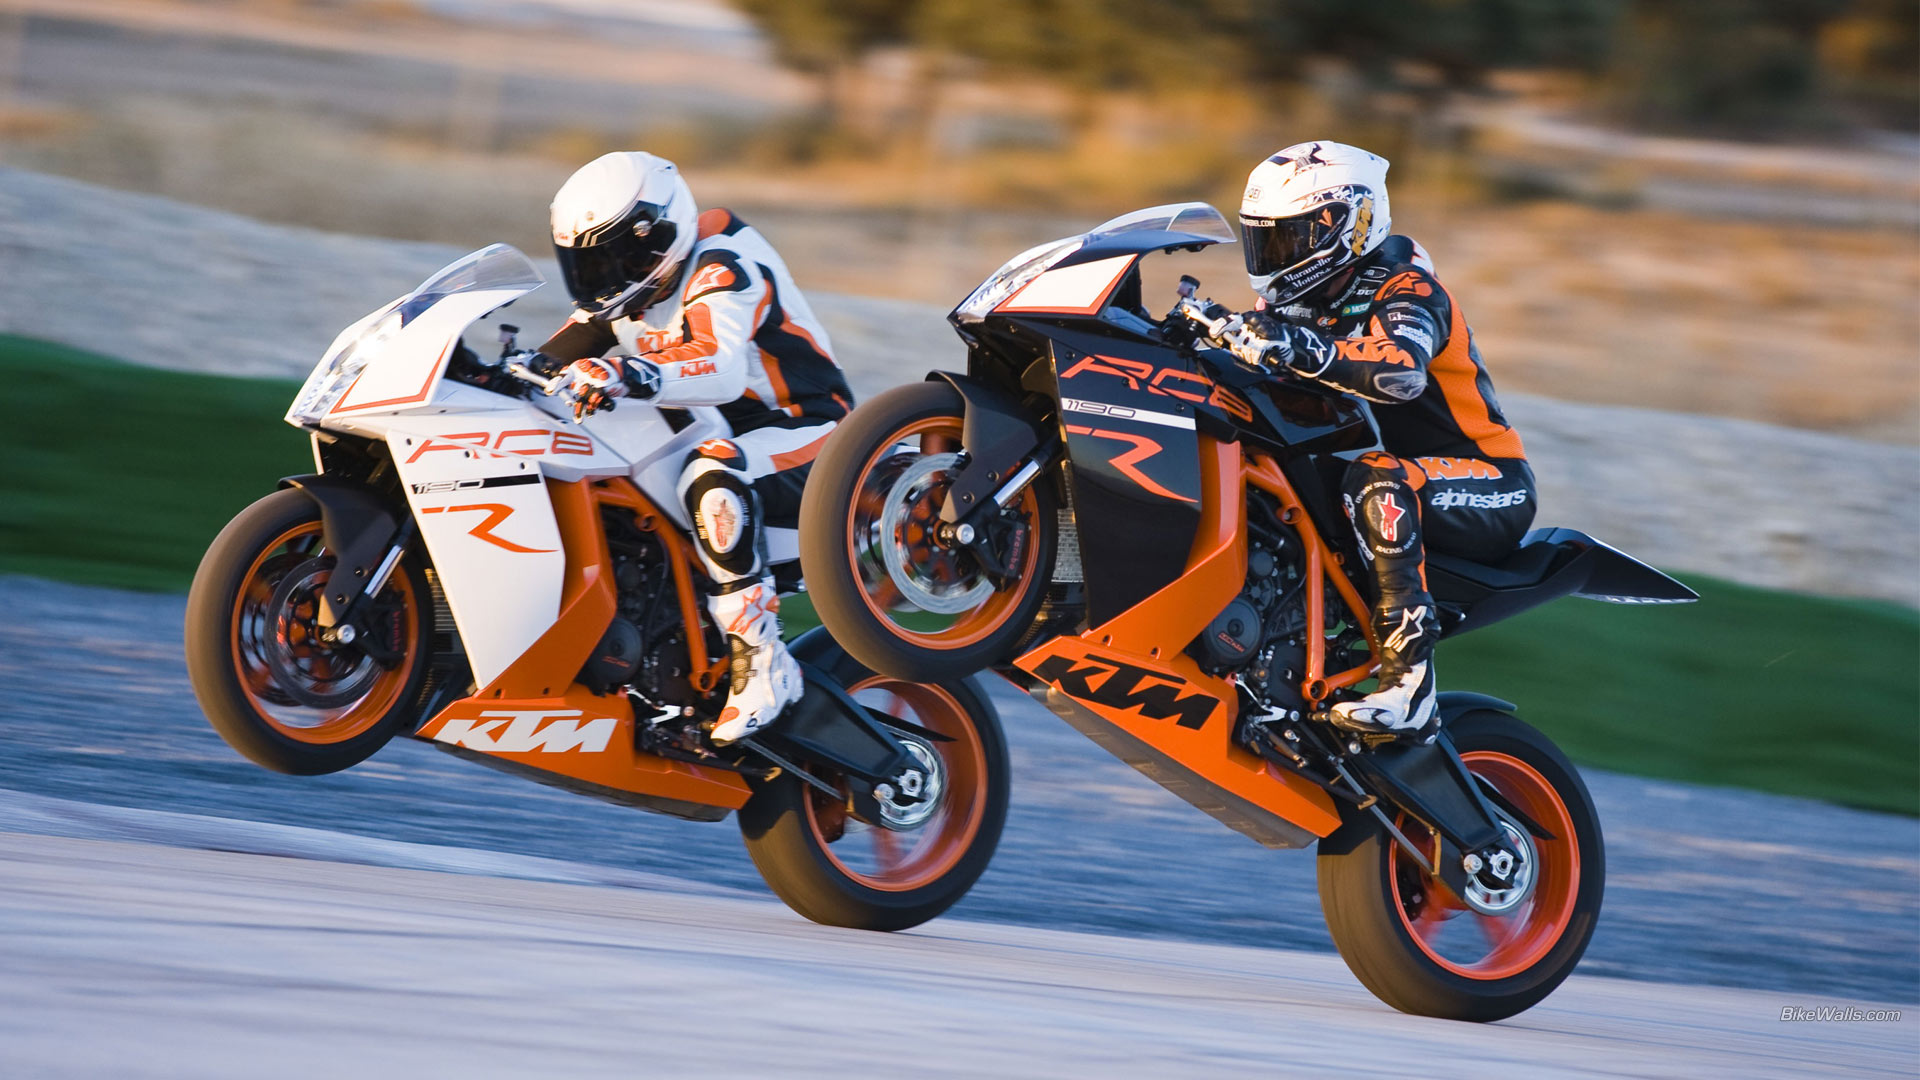 1920x1080 - KTM RC8 Wallpapers 5